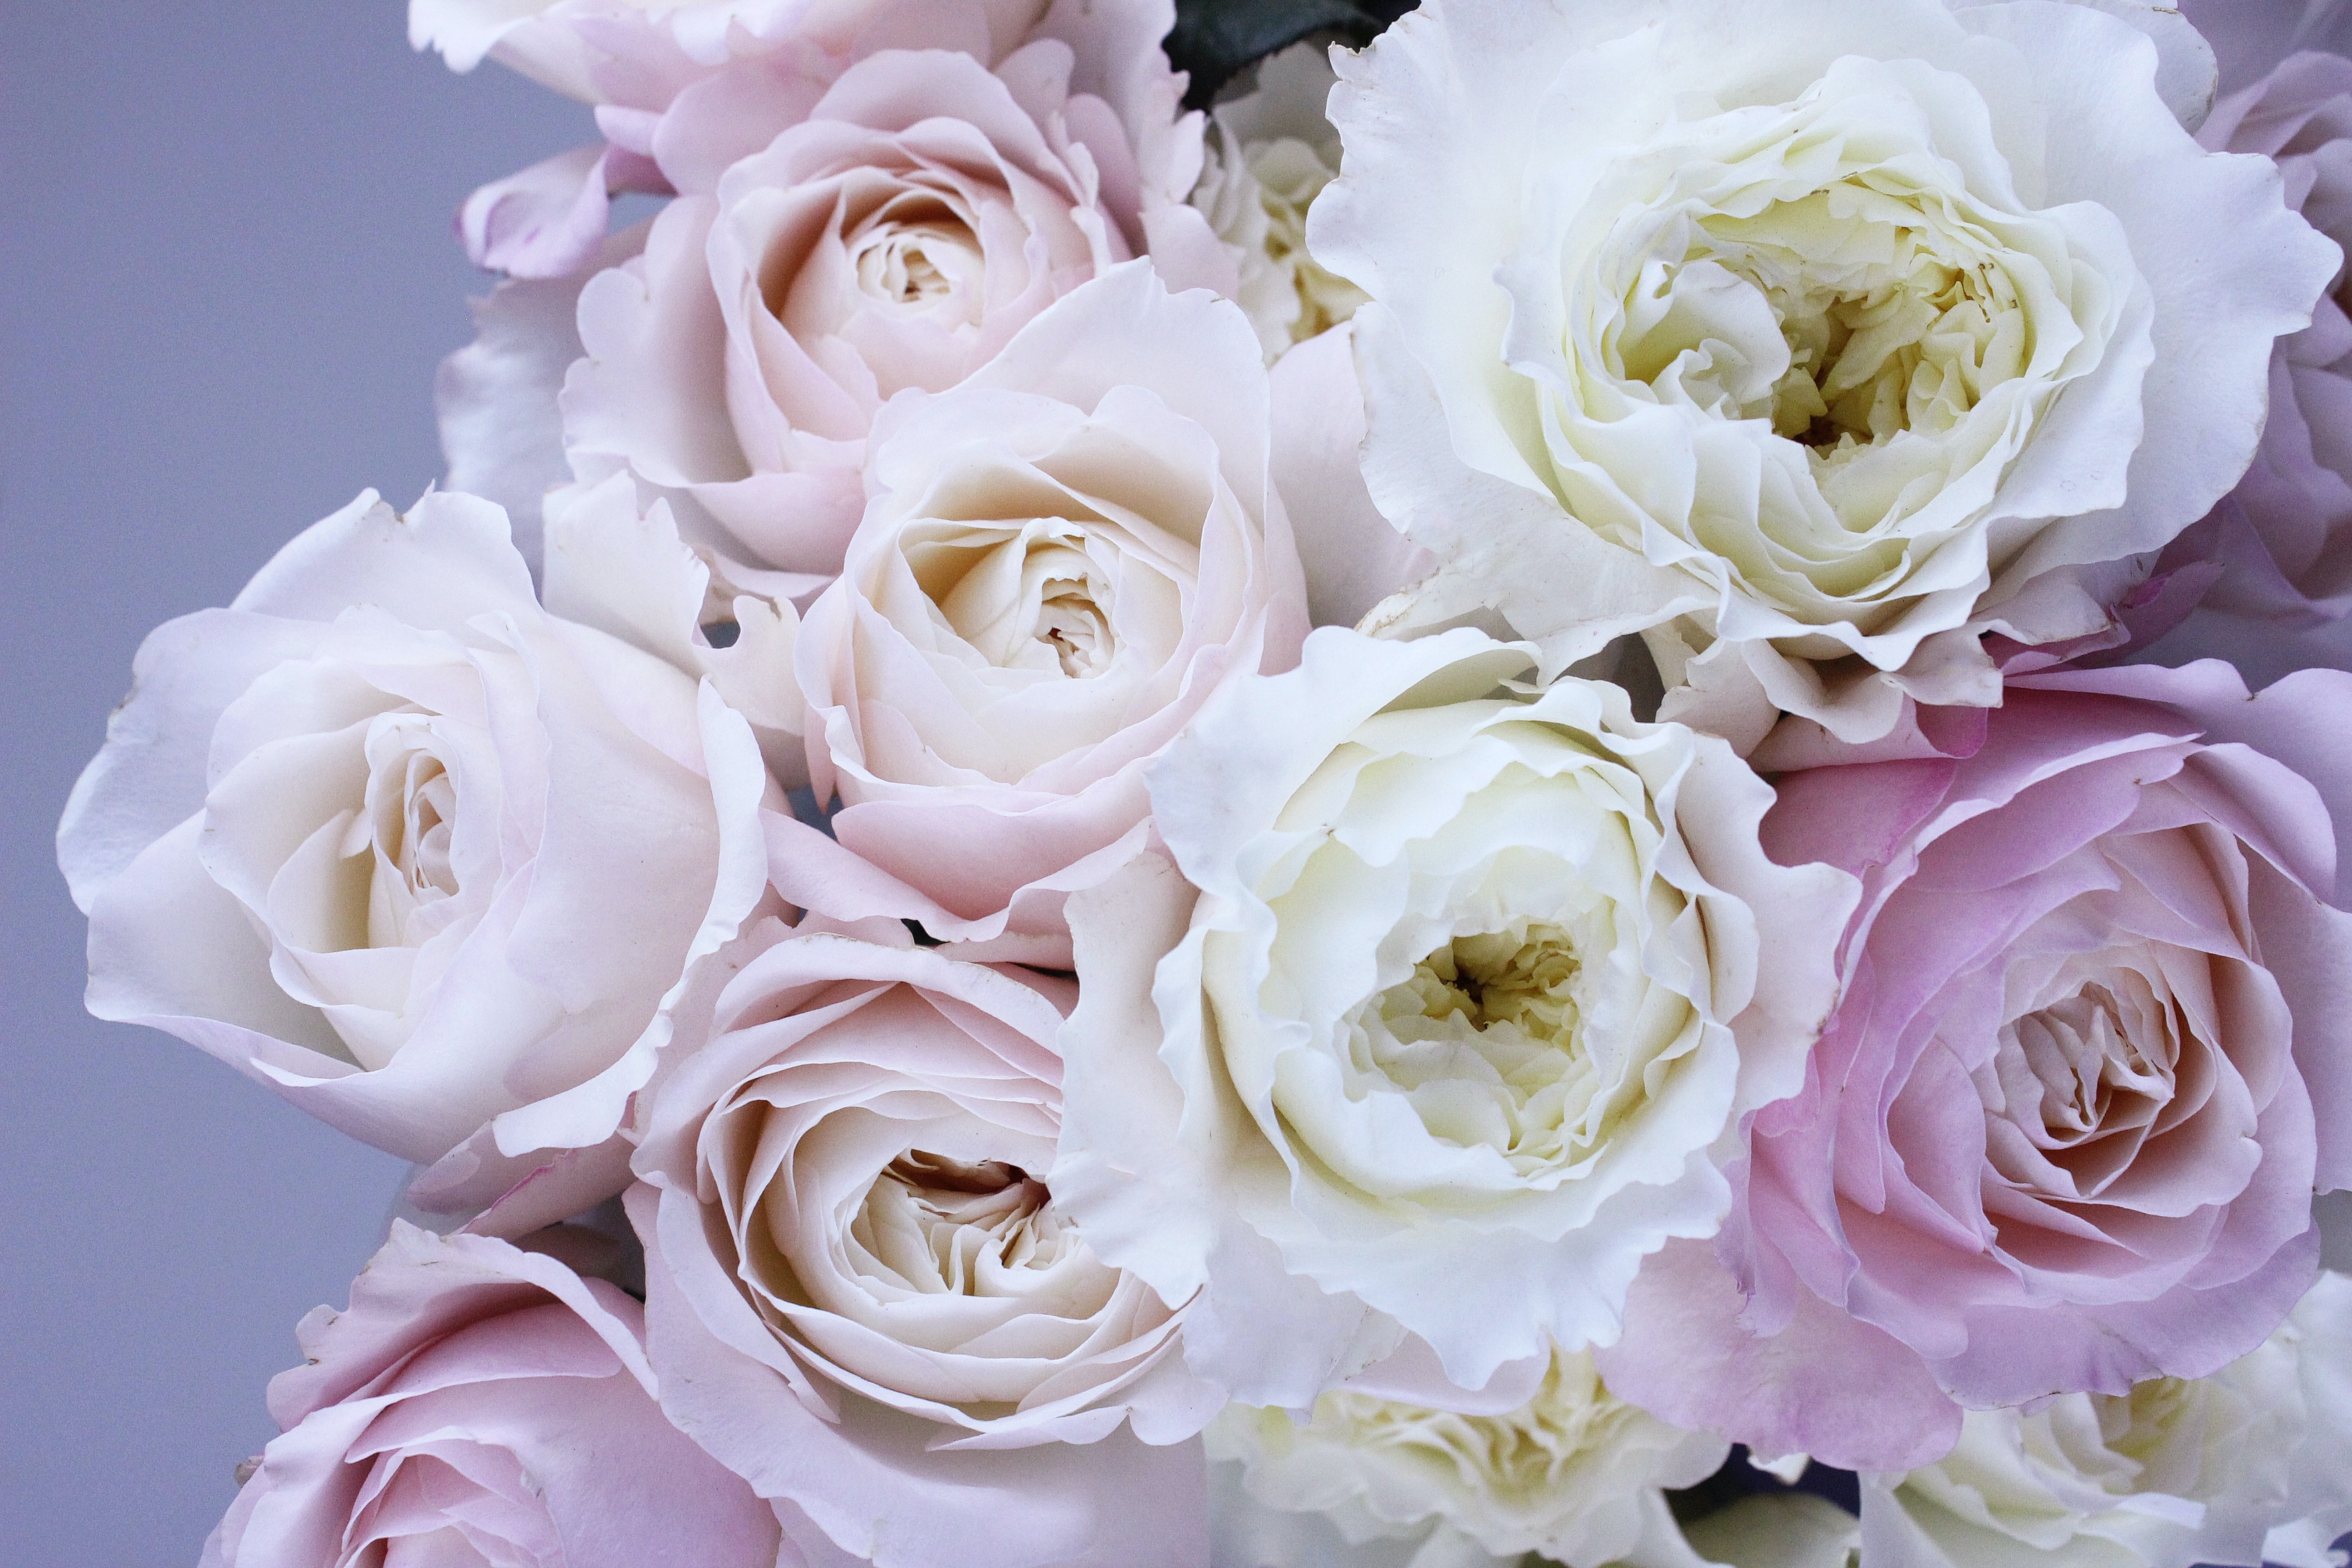 1000 great white rose photos pexels free stock photos related searches rose roses flower mightylinksfo